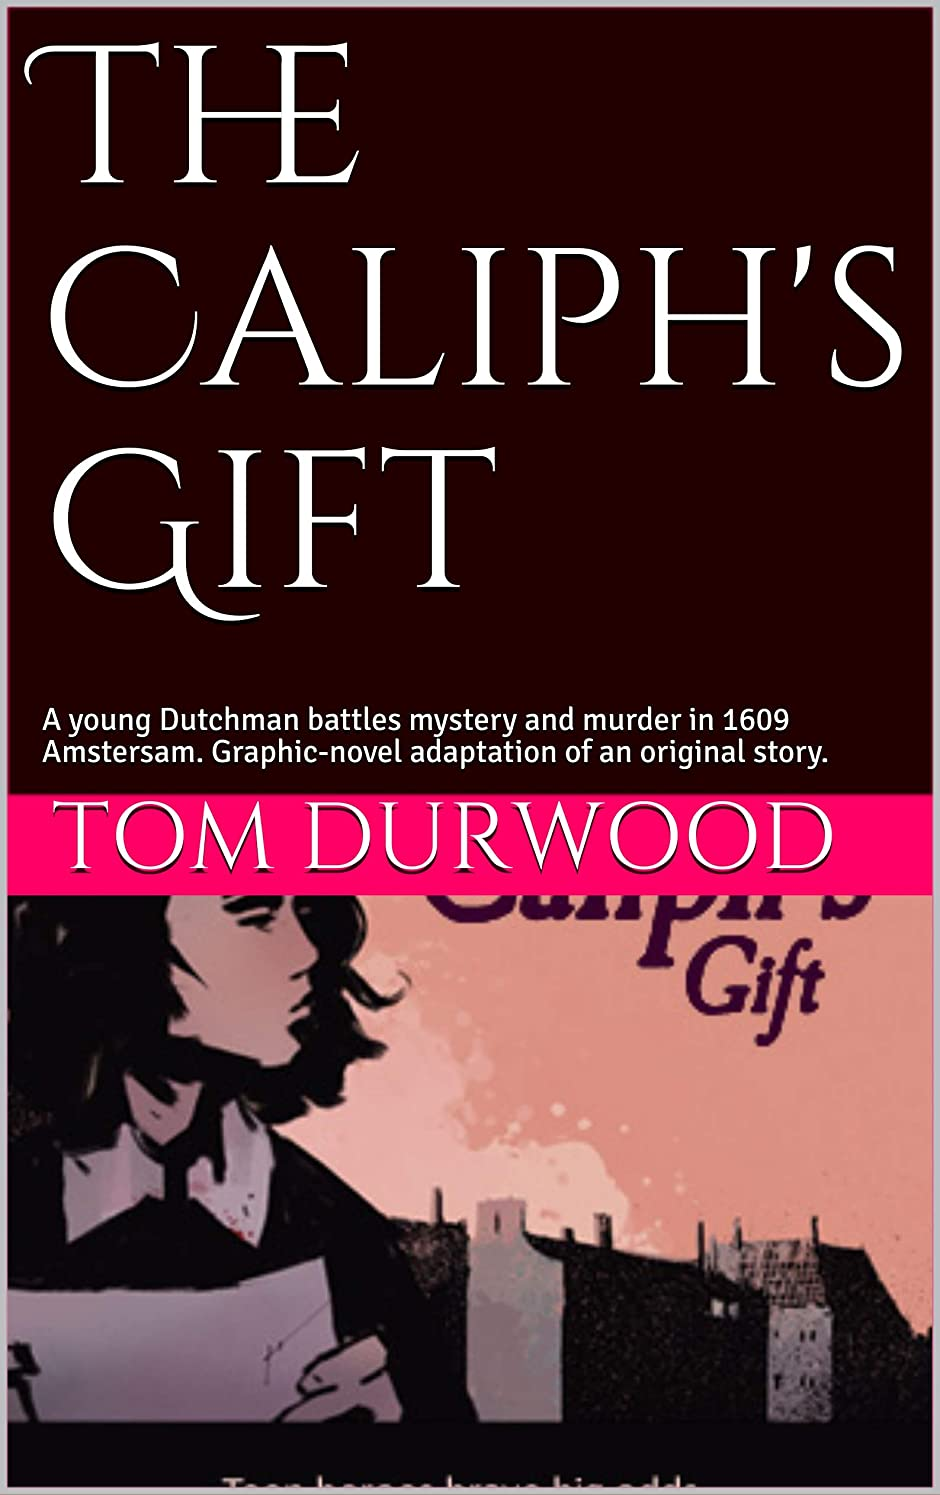 The Caliph's Gift: A young Dutchman battles mystery and murder in 1609 Amstersam. Graphic-novel adaptation of an original story. (Adventures in Empire) (English Edition)